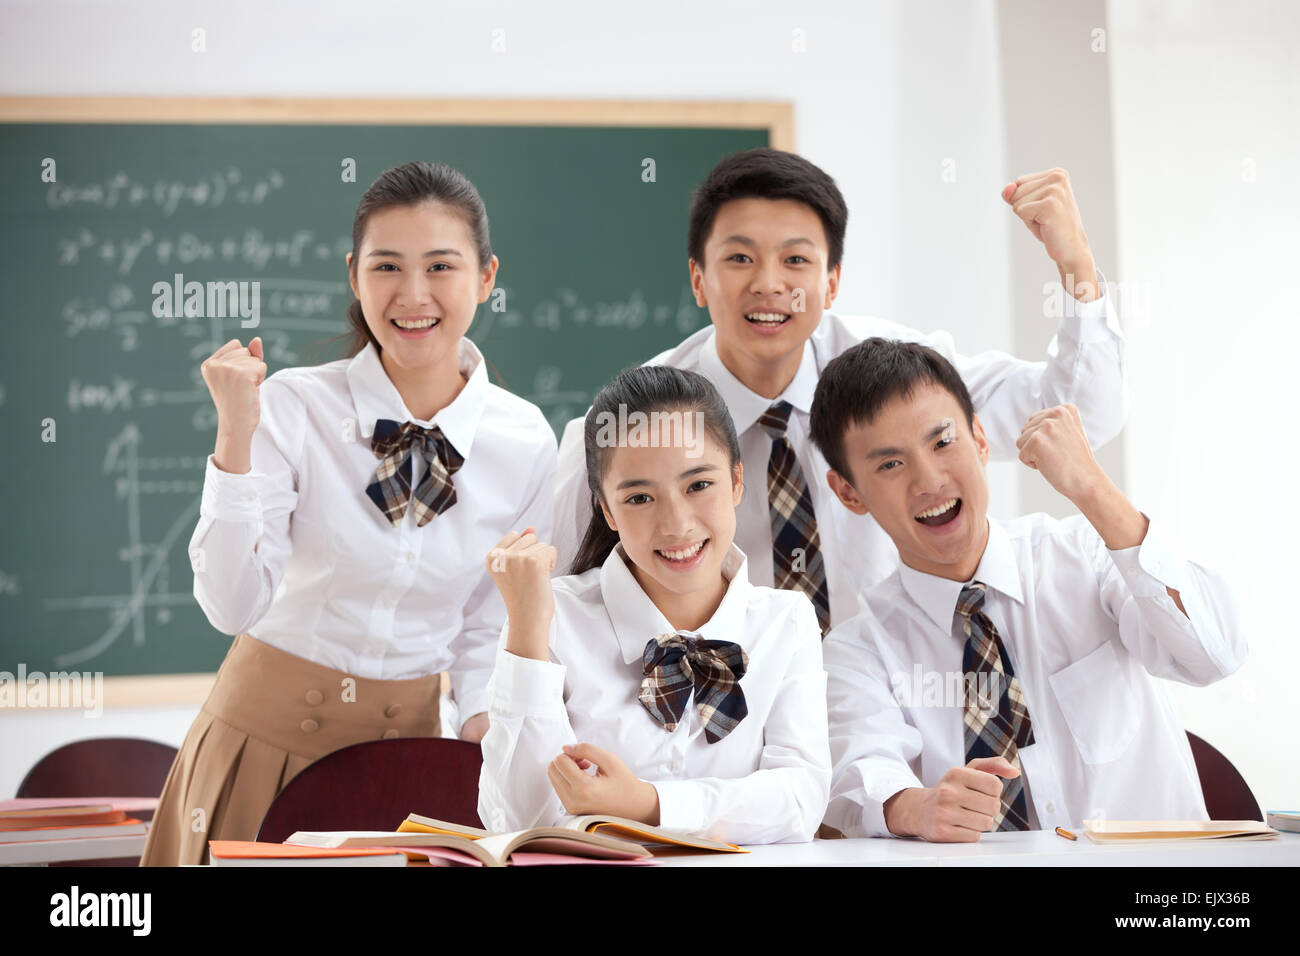 High school students to do fist gesture in the classroom - Stock Image